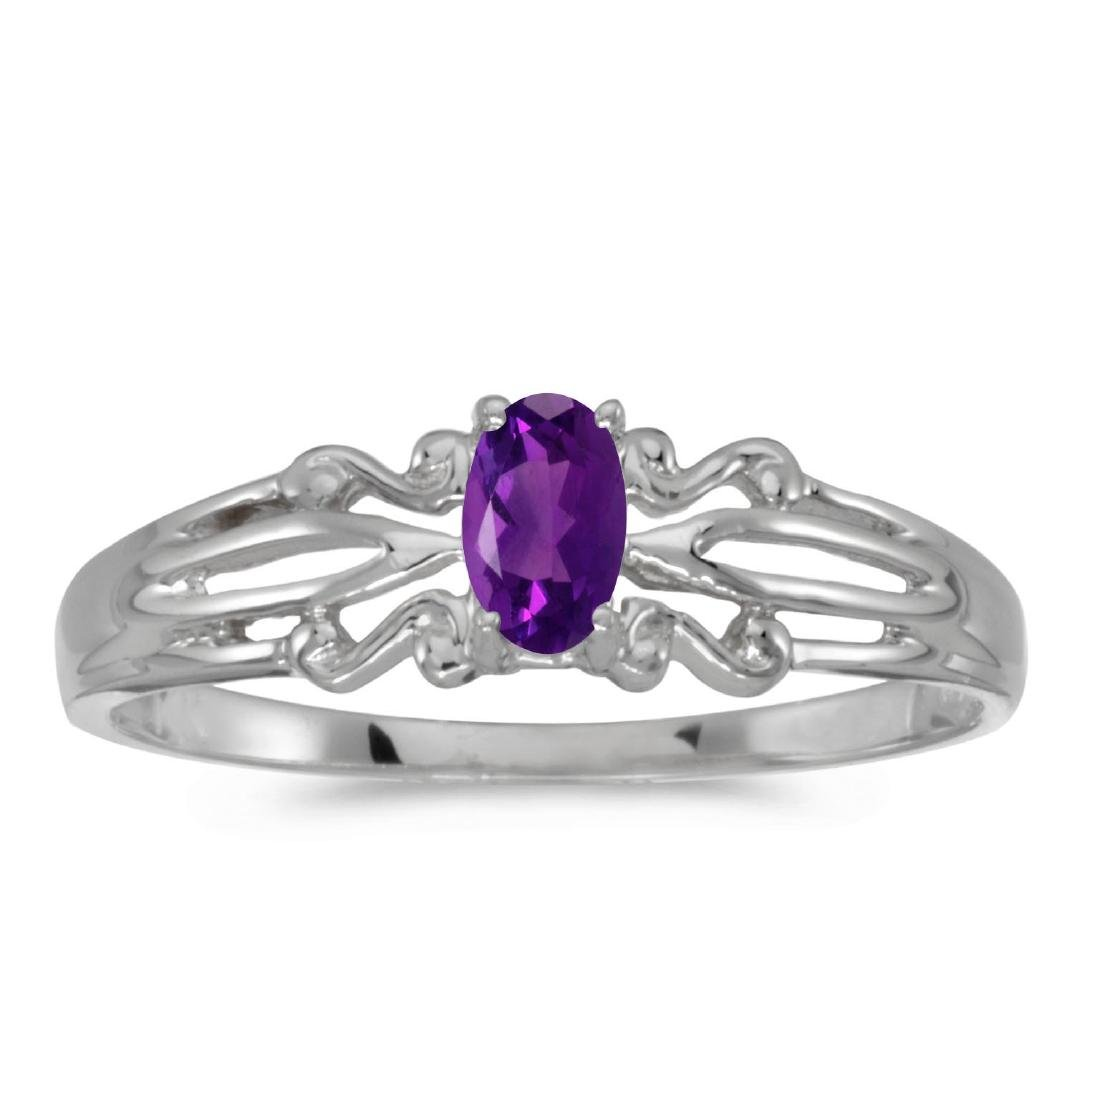 Certified 10k White Gold Oval Amethyst Ring 0.18 CTW